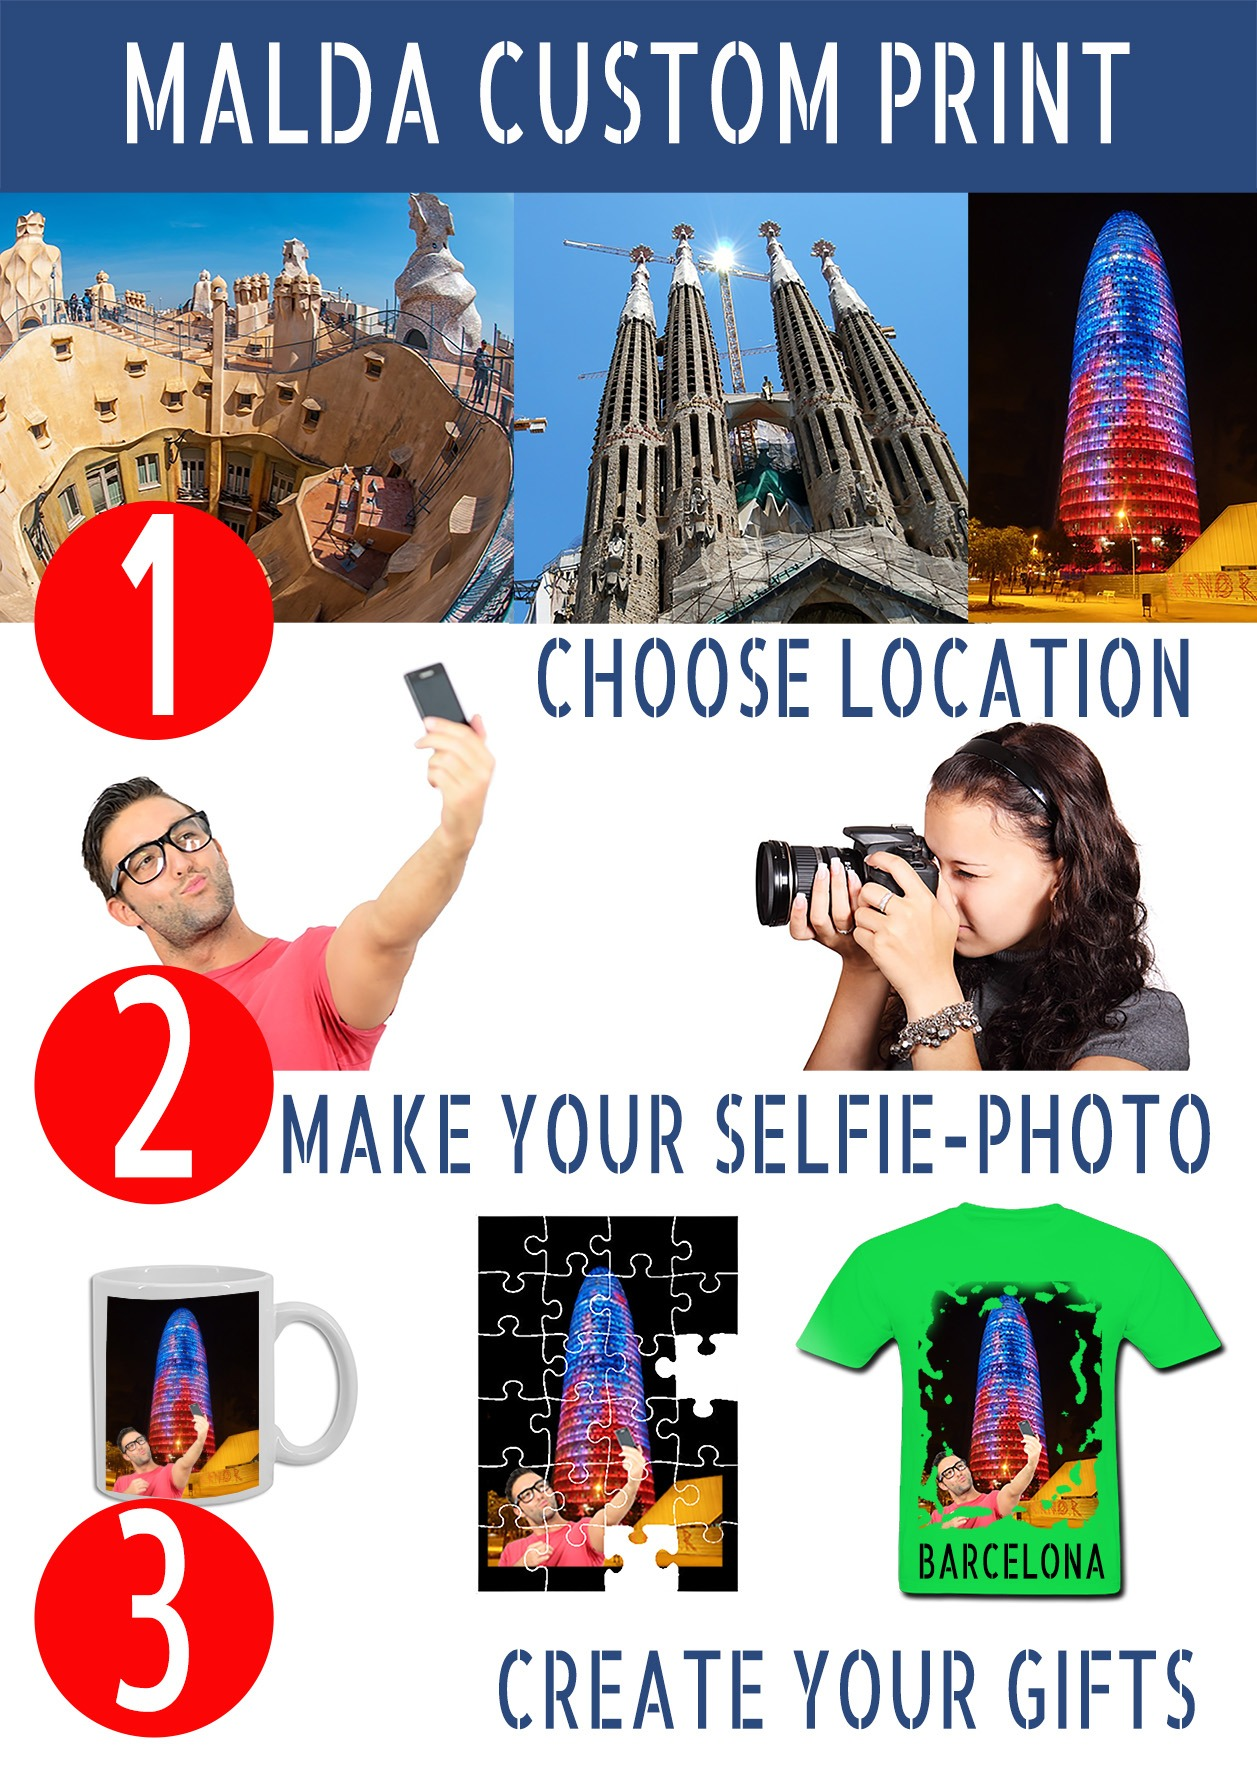 Create your gifts of Barcelona